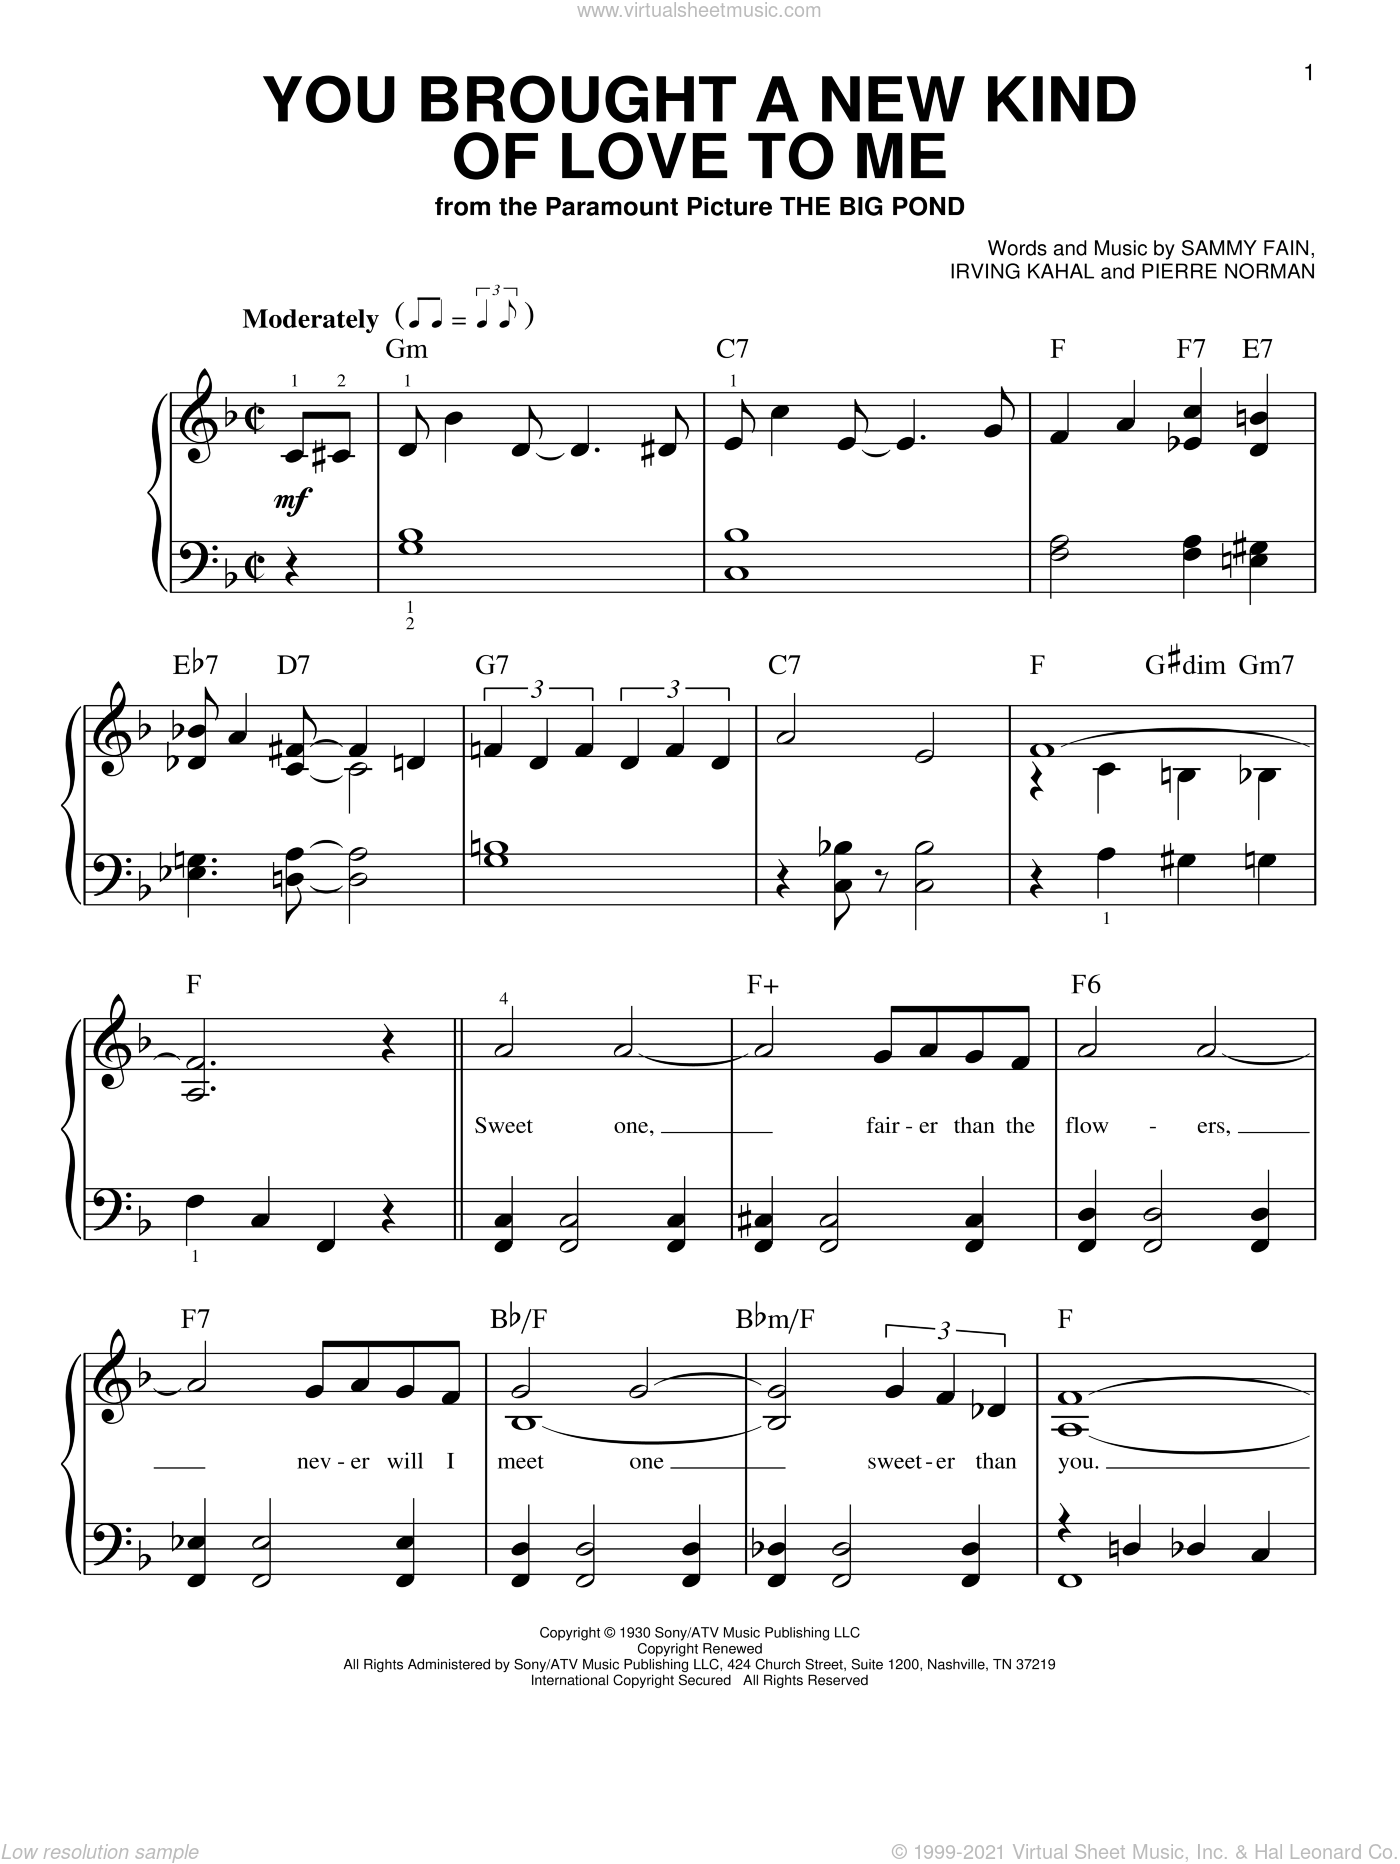 You Brought A New Kind Of Love To Me sheet music for piano solo by Sammy Fain, Scott Hamilton, Irving Kahal and Pierre Norman, beginner skill level